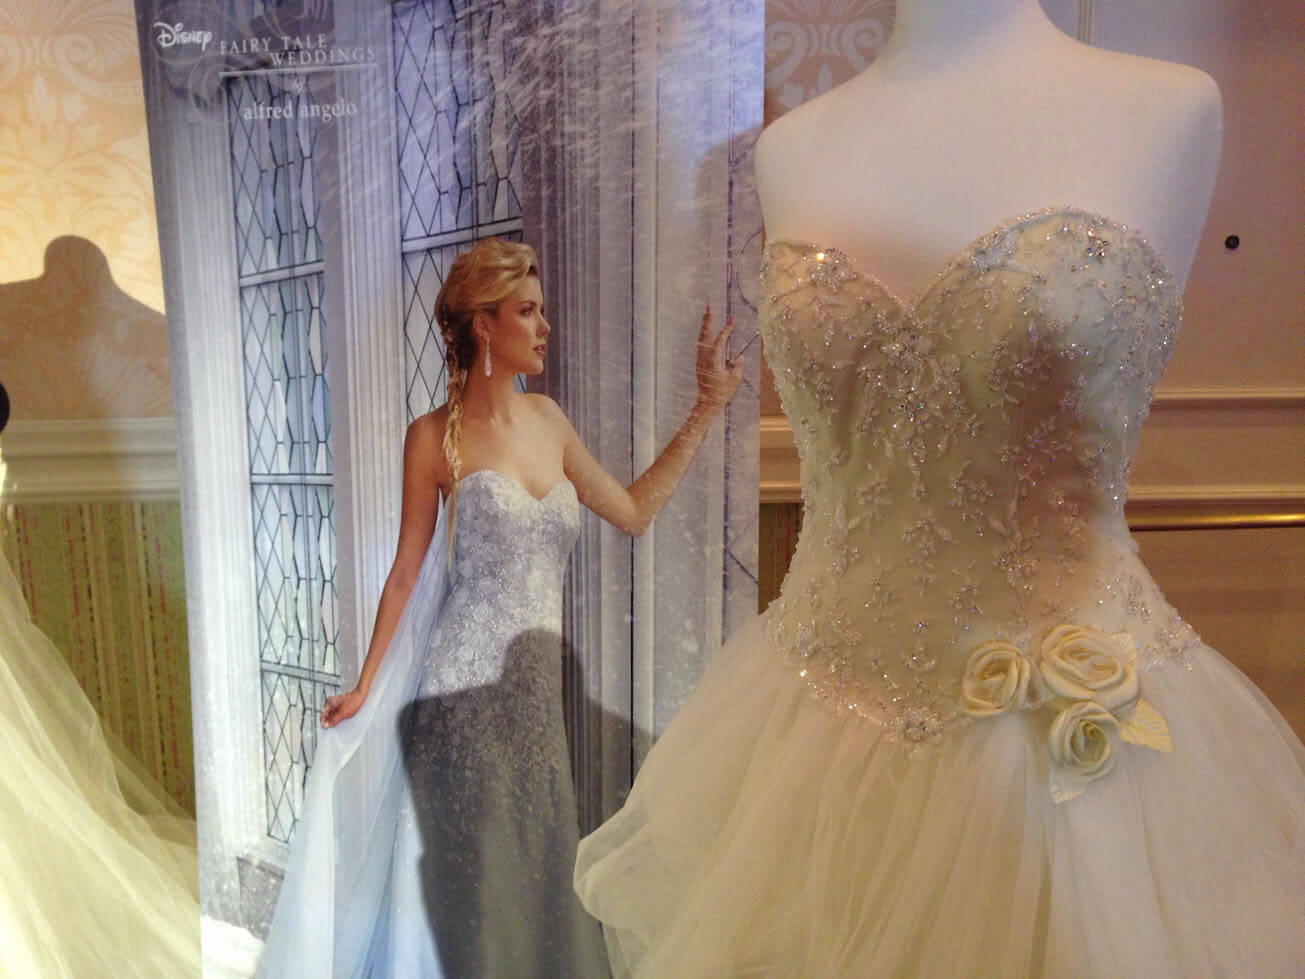 Wedding dresses cakes and decor comes together at disneys fairy disney monicamarmolfo Gallery